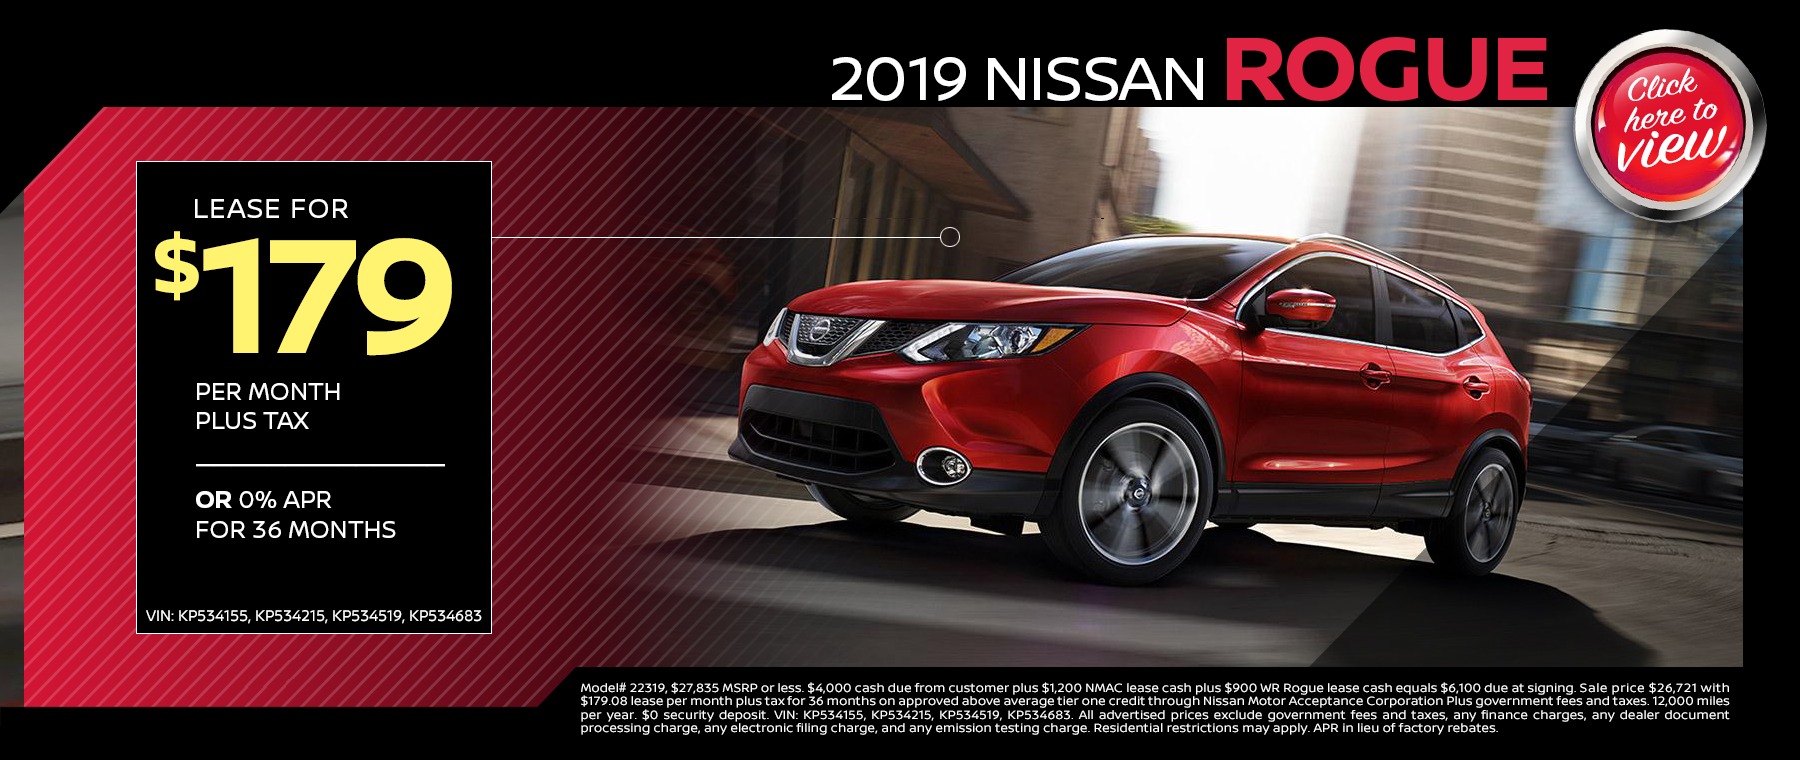 2019 NISSAN rouge LEASE MARCH